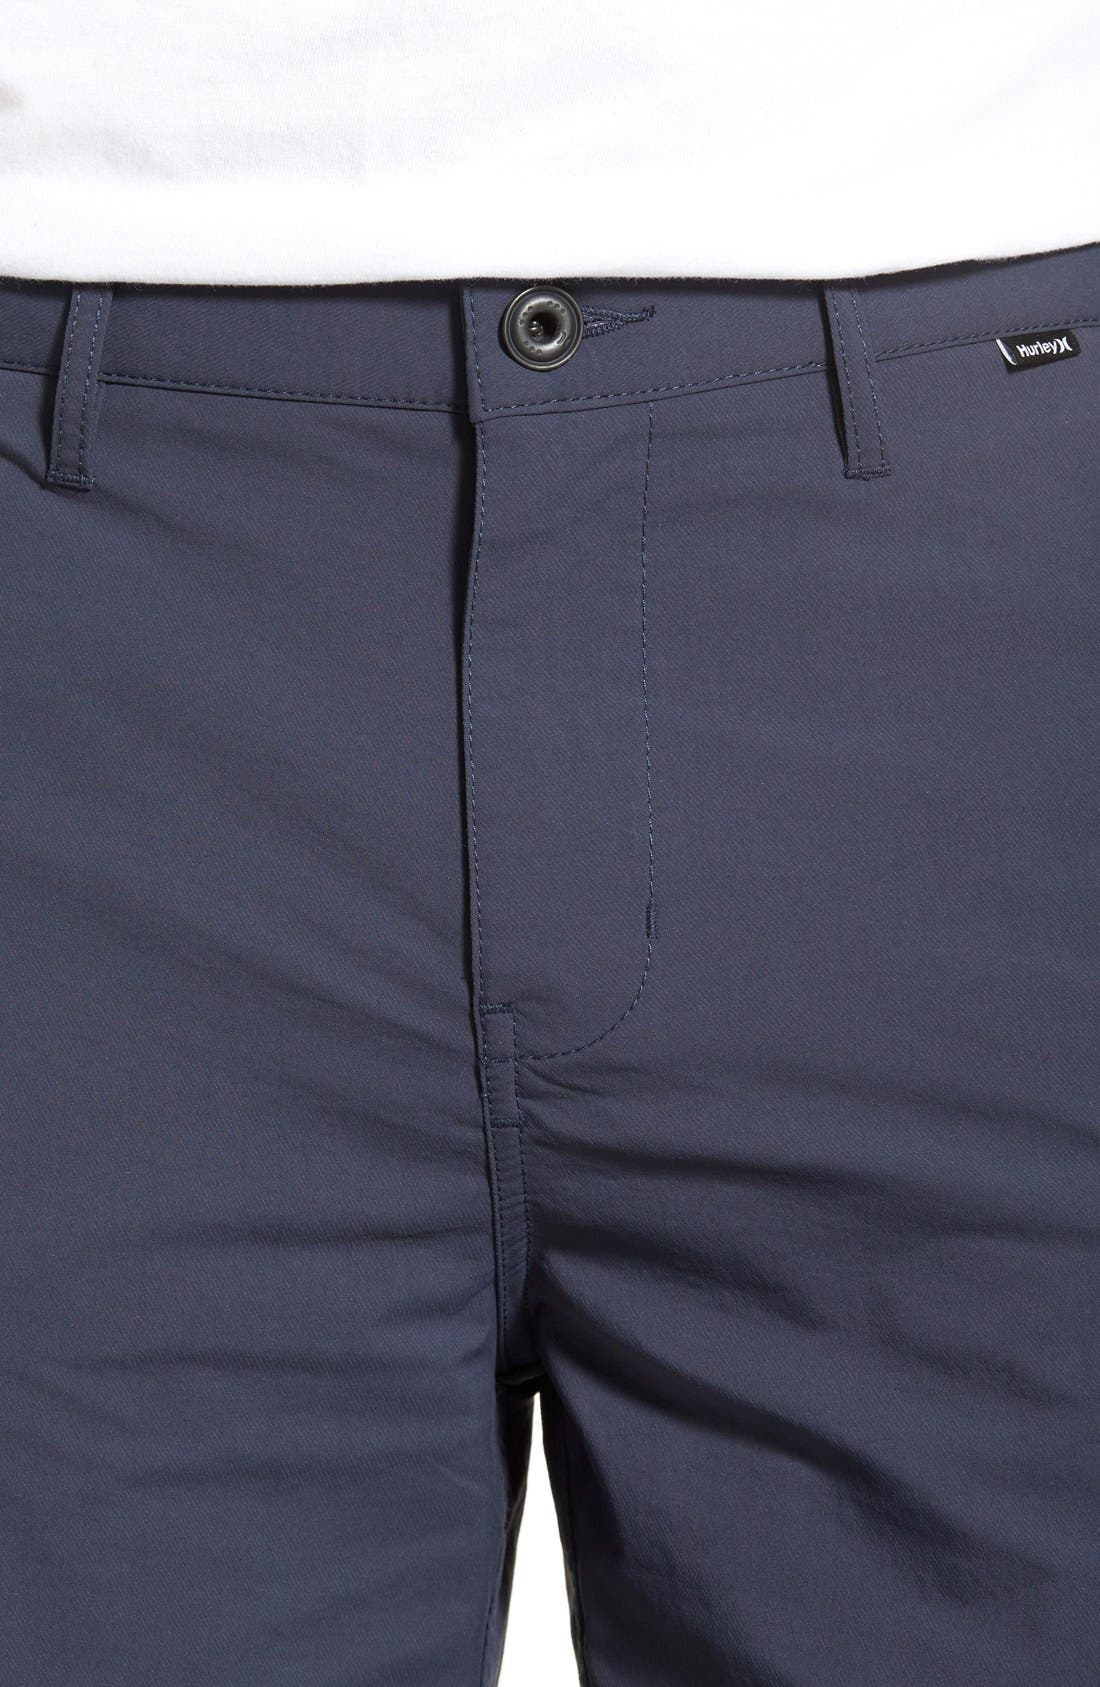 'Dry Out' Dri-FIT<sup>™</sup> Chino Shorts,                             Alternate thumbnail 128, color,